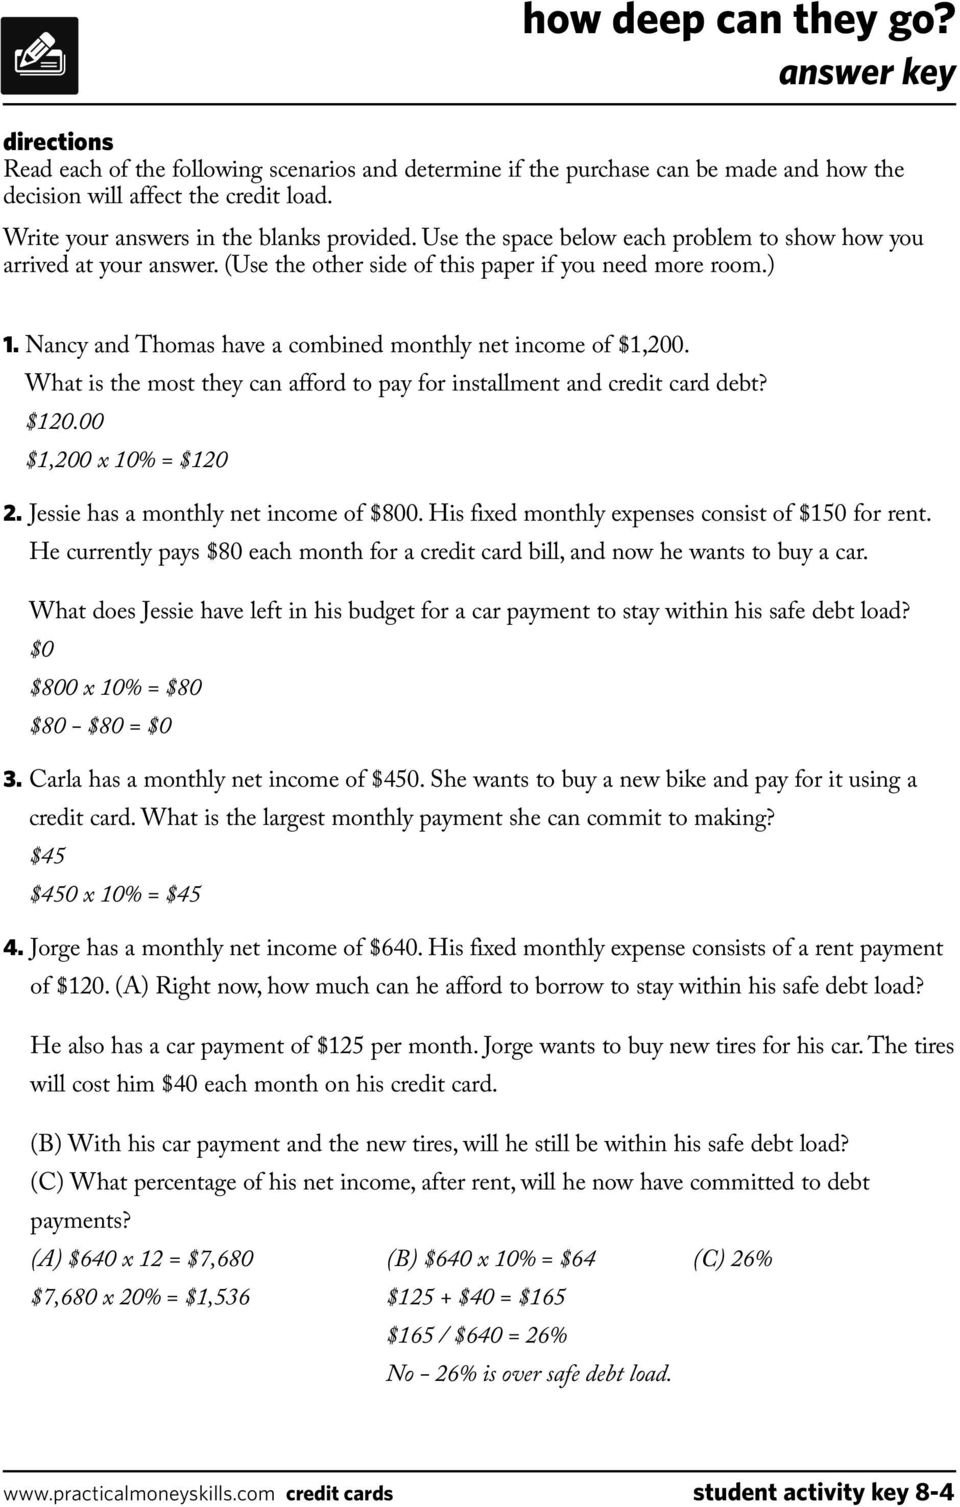 Teacher's Guide Lesson Eight Credit Cards 0409  Pdf In Shopping For Credit Worksheet Answer Key